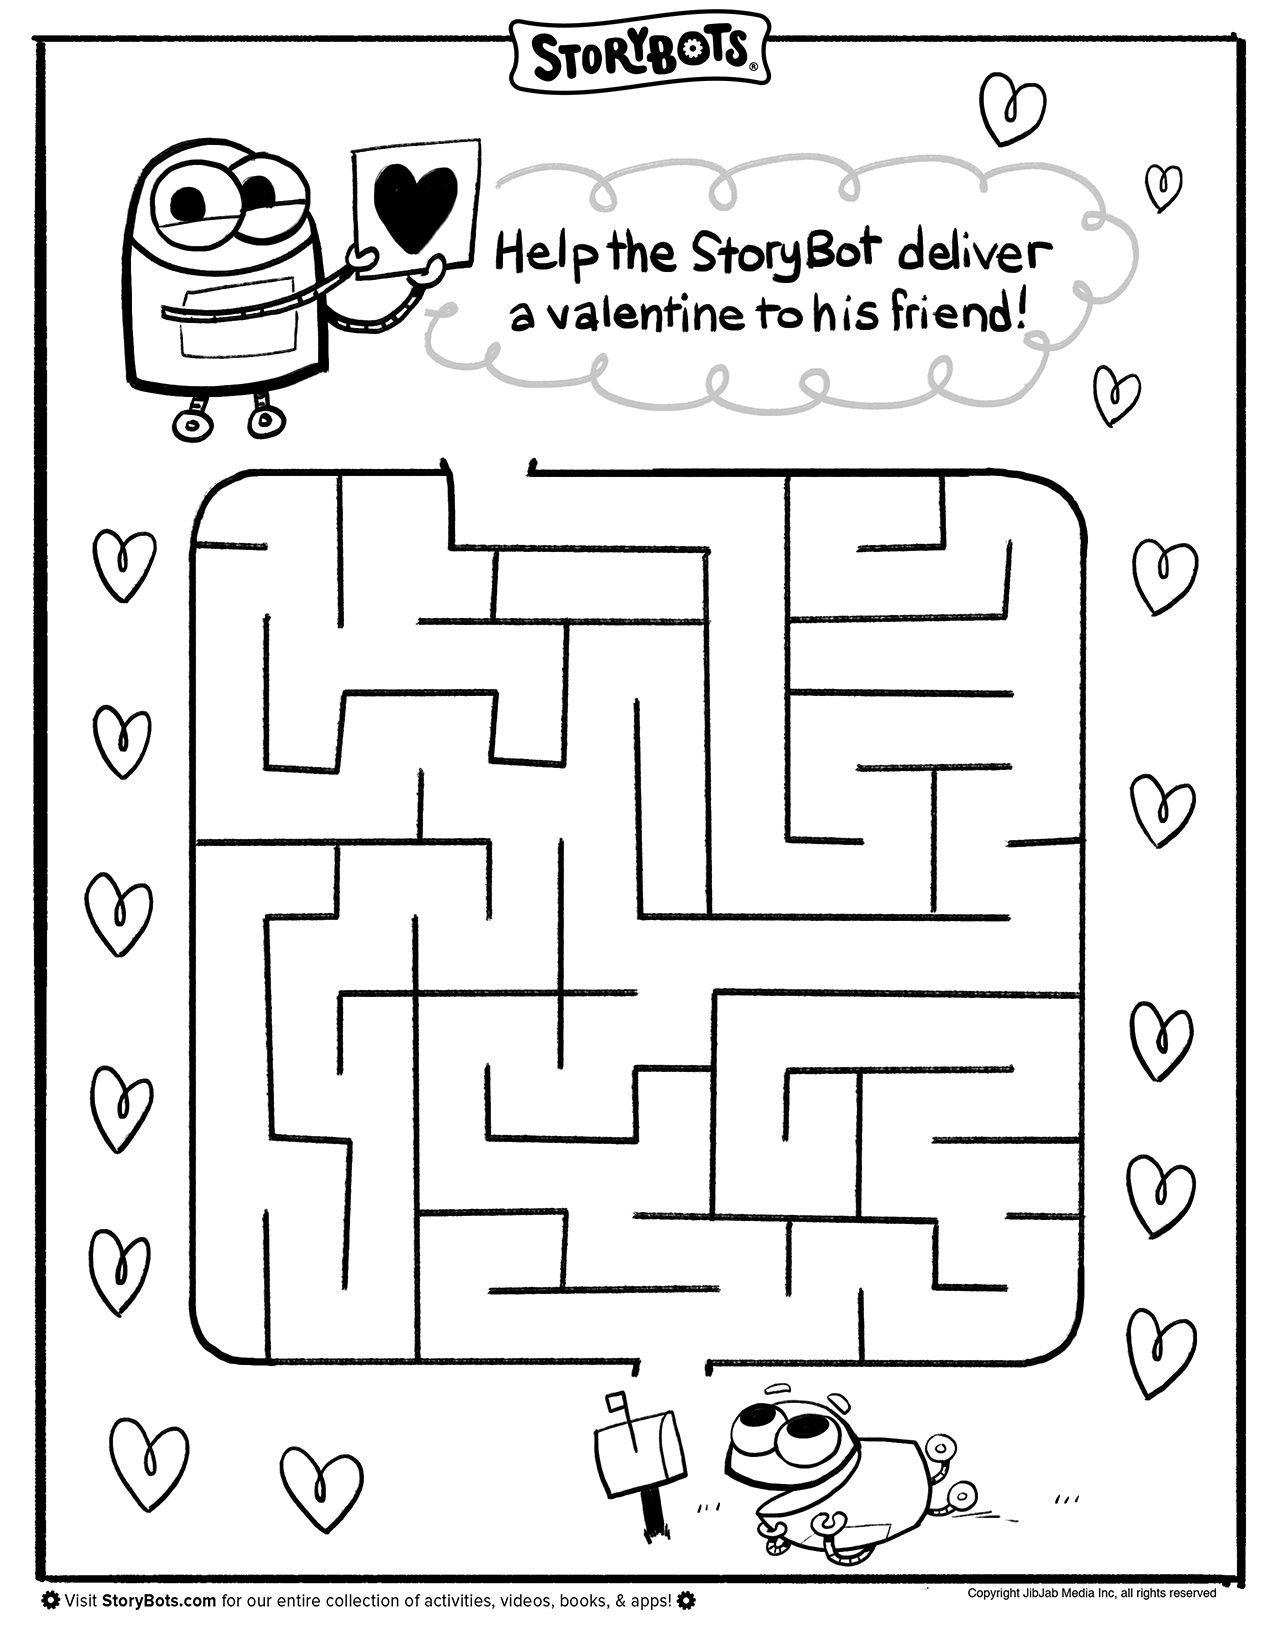 Valentineu0027s Day Maze   Help The StoryBot Deliver A Valentine To A Friend!